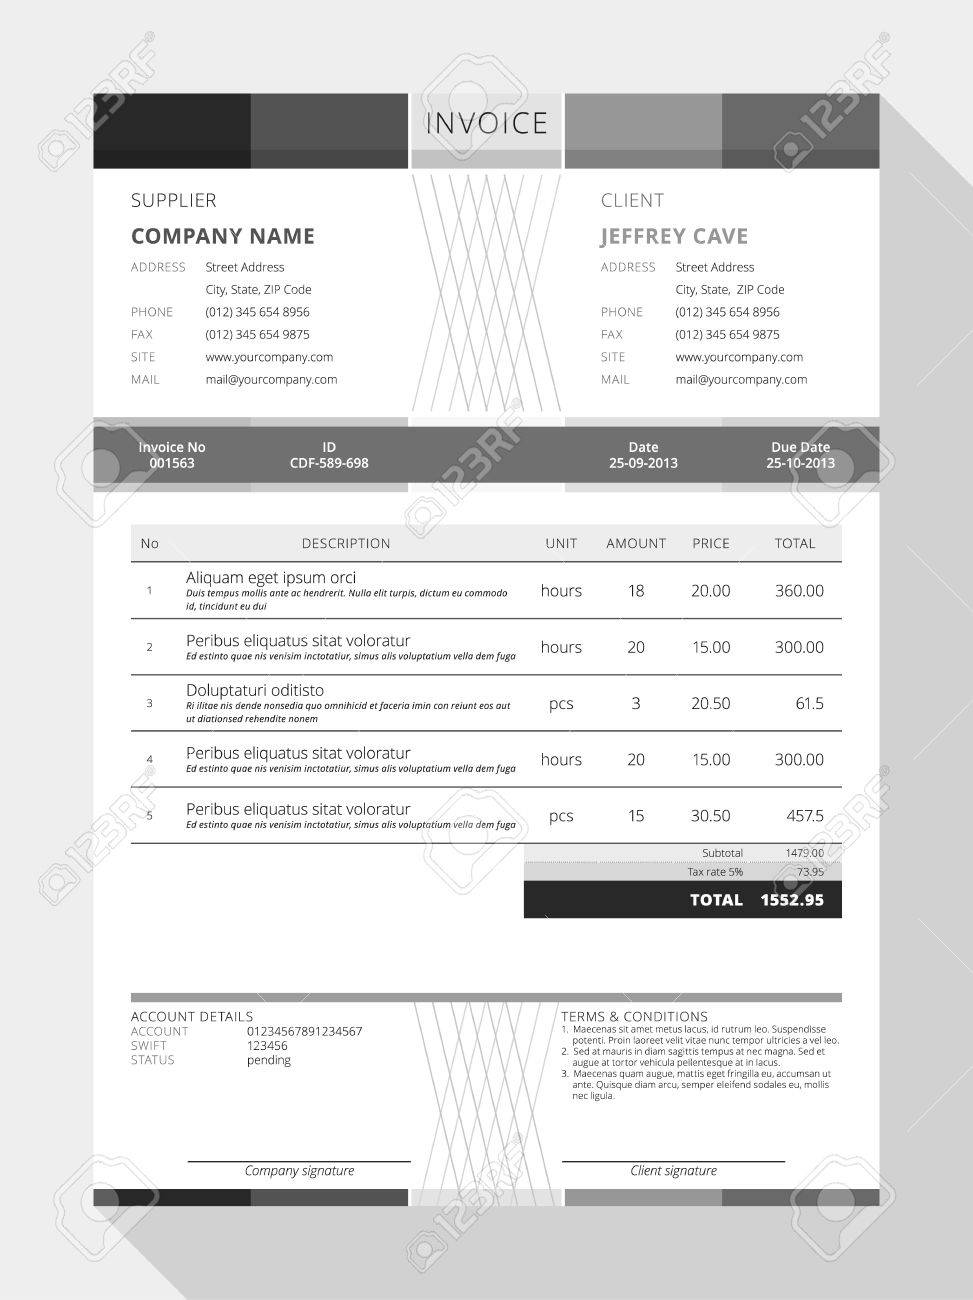 Modaoxus  Outstanding Design An Invoice  Professional Graphic Design Invoice  With Lovable Vector Customizable Invoice Form Template Design Vector   Design An Invoice With Breathtaking Carbonless Invoice Forms Also Microsoft Word Invoice Template Mac In Addition Invoice For Photographers And Invoice Factoring Service As Well As Google Docs Invoices Additionally Painting Invoice Sample From Happytomco With Modaoxus  Lovable Design An Invoice  Professional Graphic Design Invoice  With Breathtaking Vector Customizable Invoice Form Template Design Vector   Design An Invoice And Outstanding Carbonless Invoice Forms Also Microsoft Word Invoice Template Mac In Addition Invoice For Photographers From Happytomco